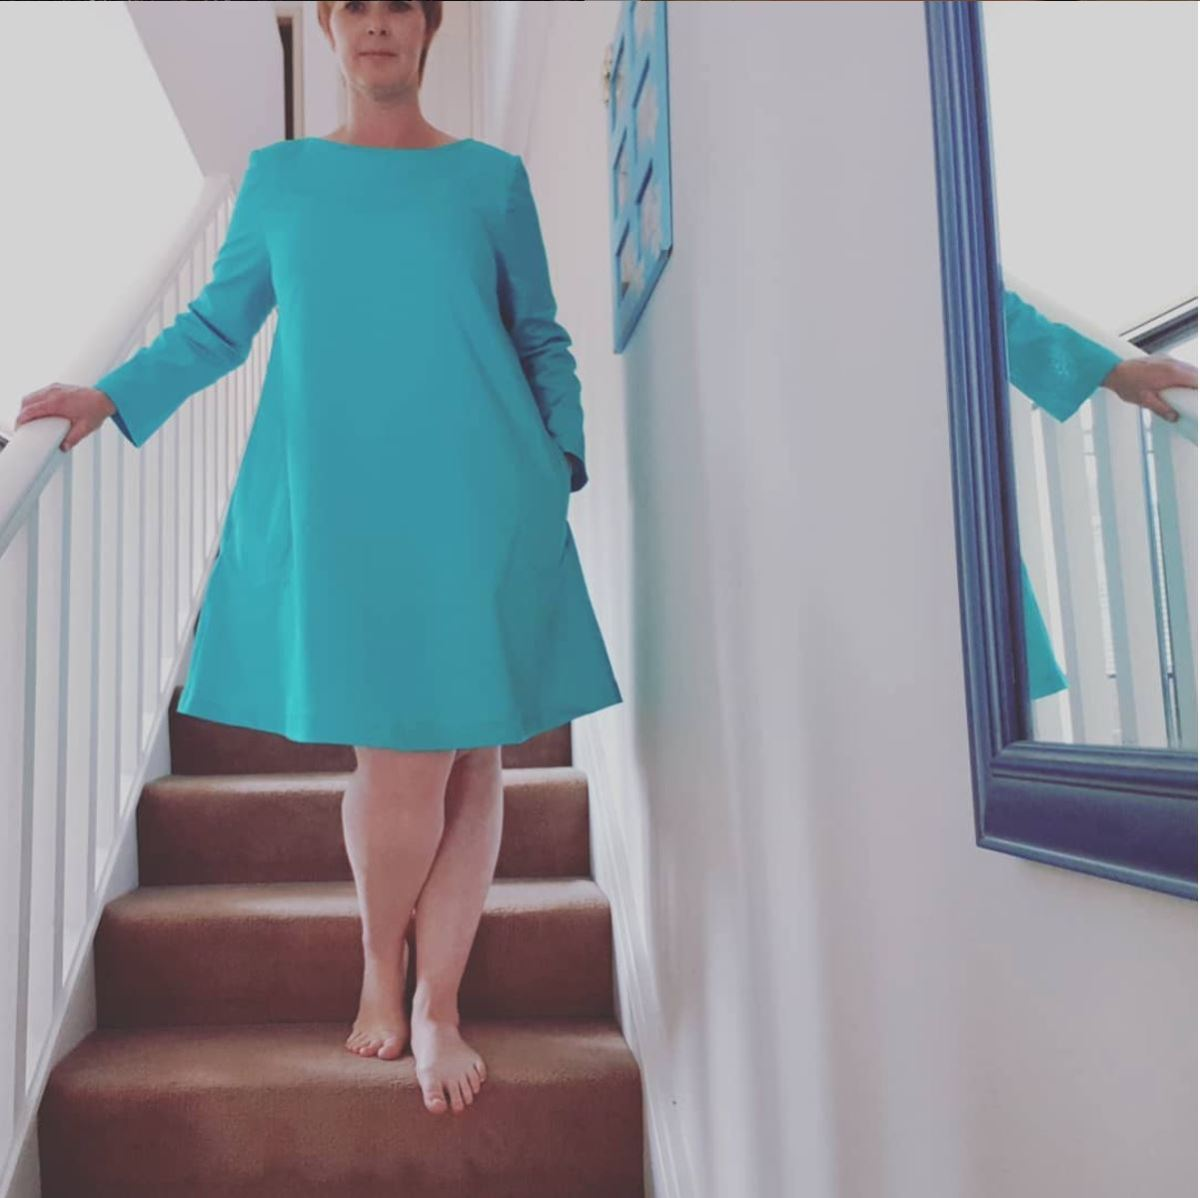 Bright blue turquoise swing dress with long sleeves